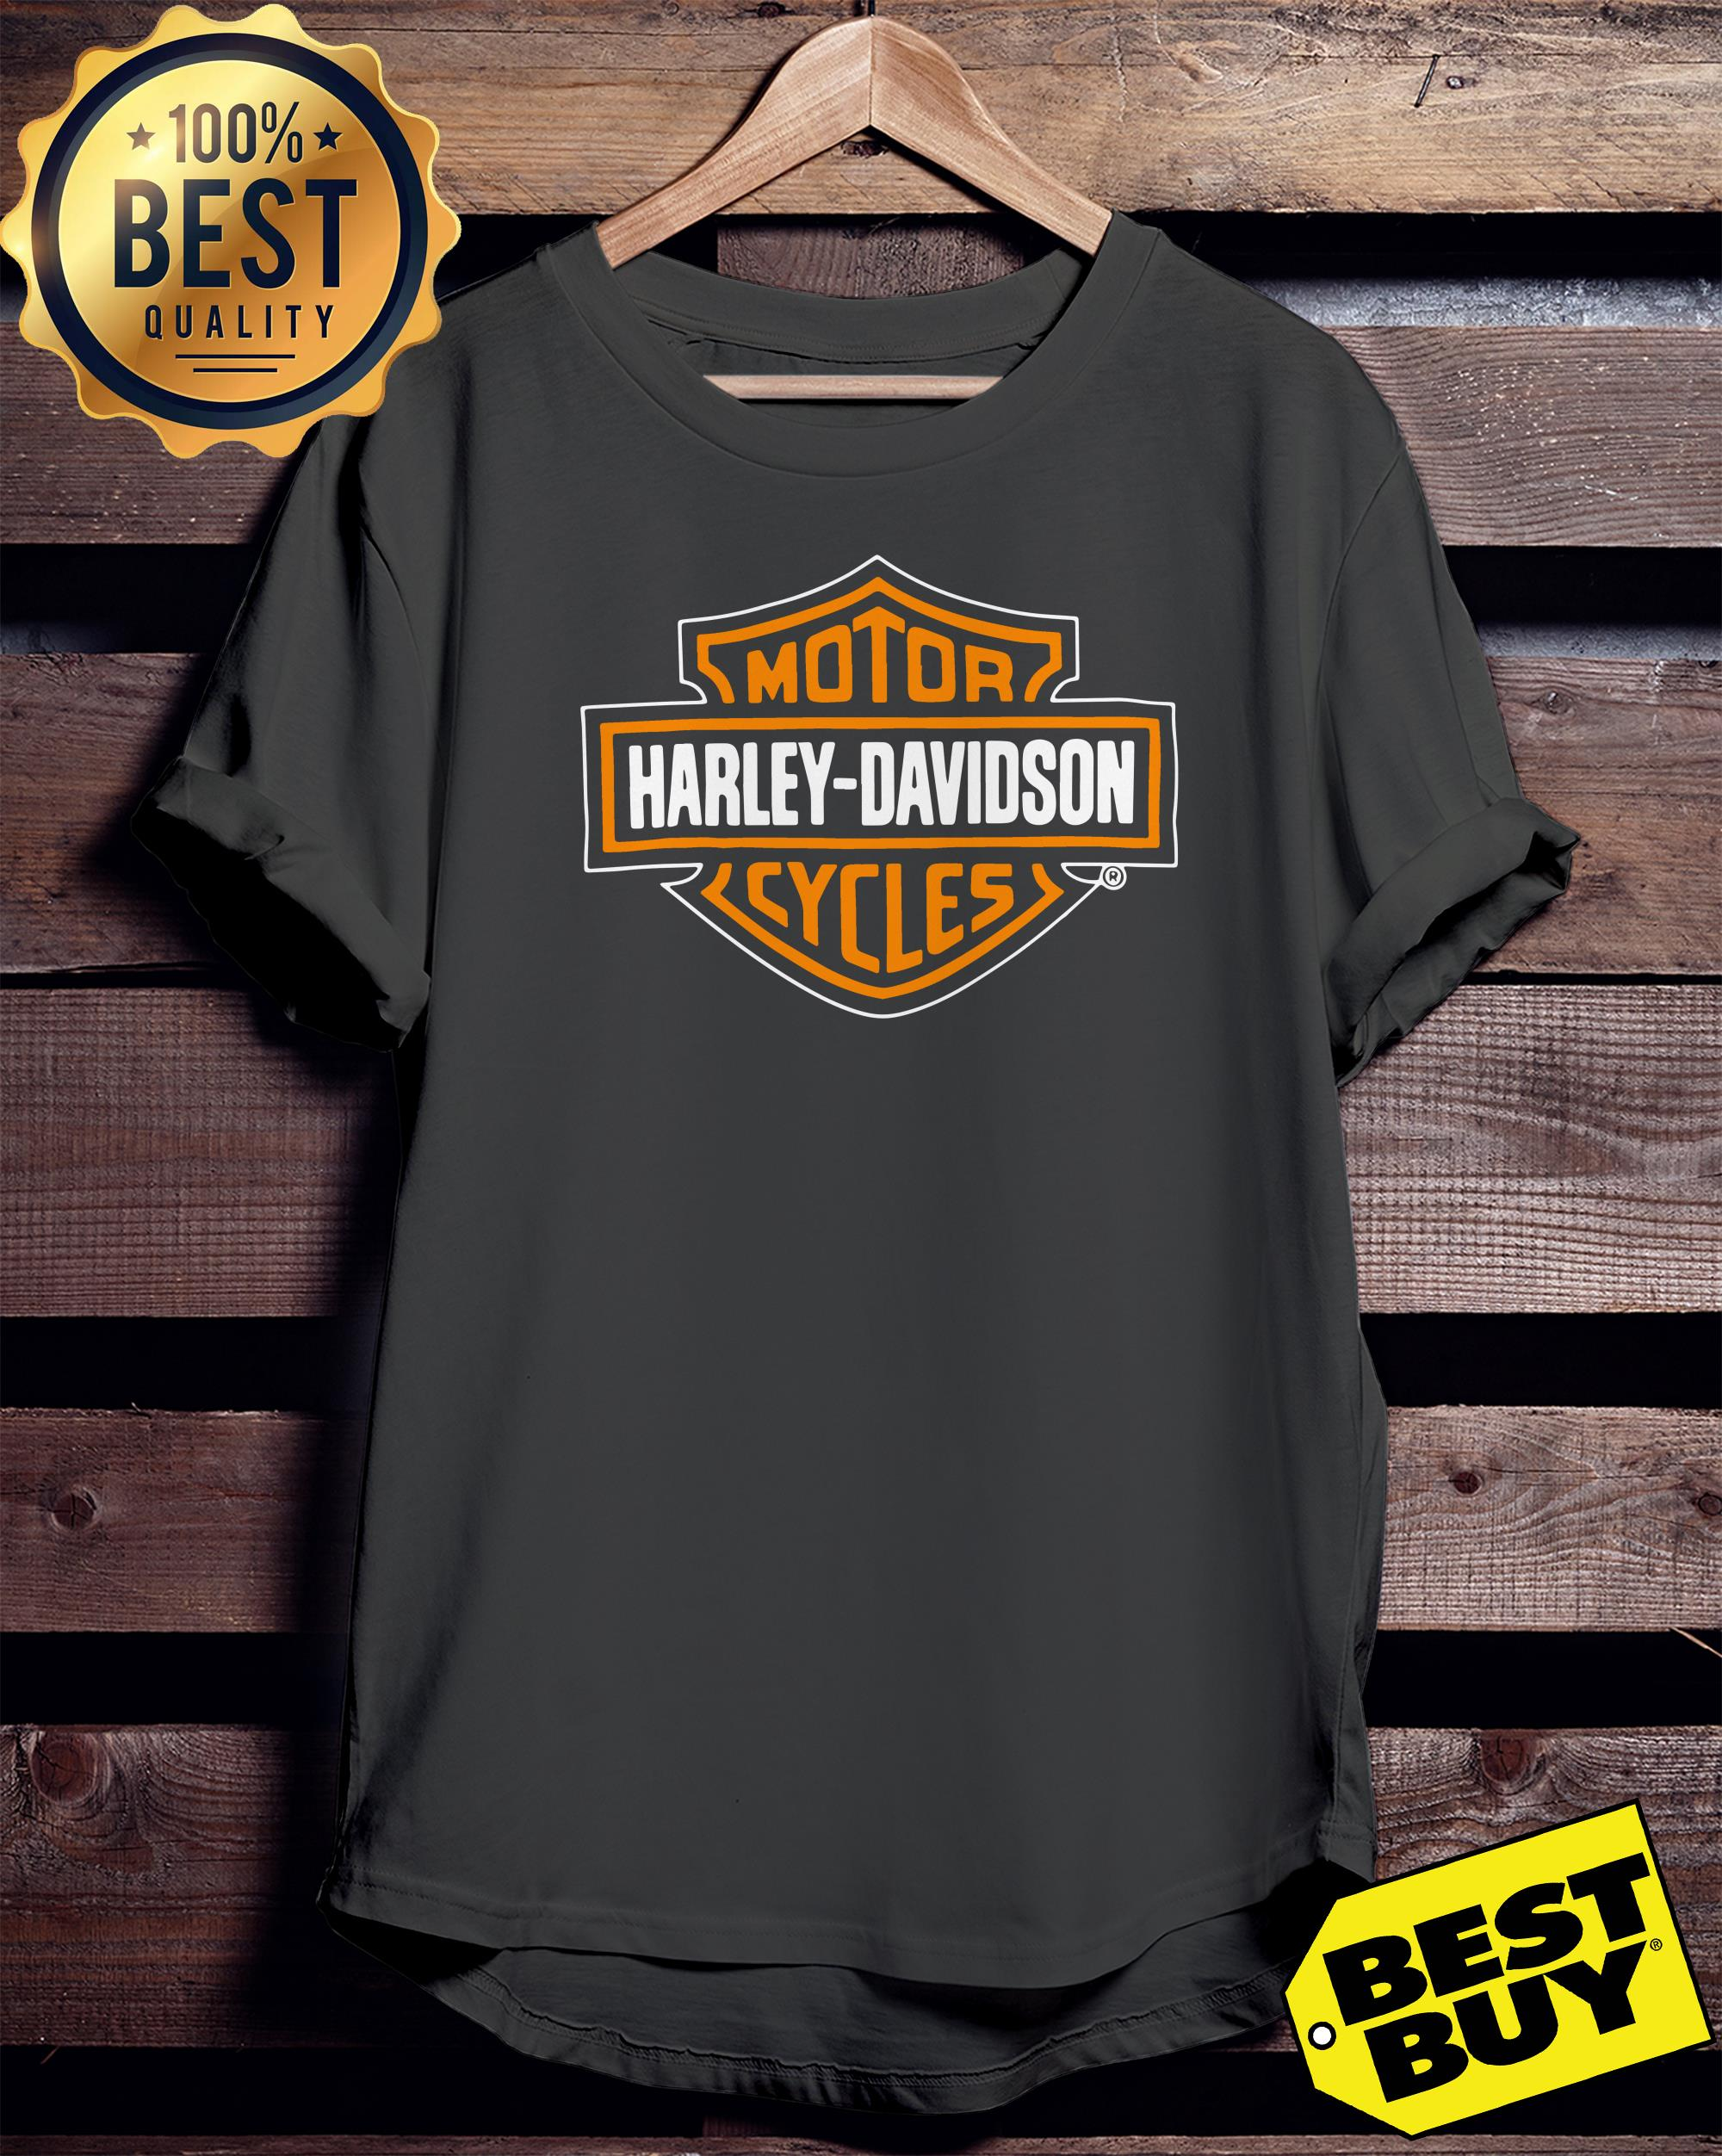 Motor Harley Davidson cycles ladies tee